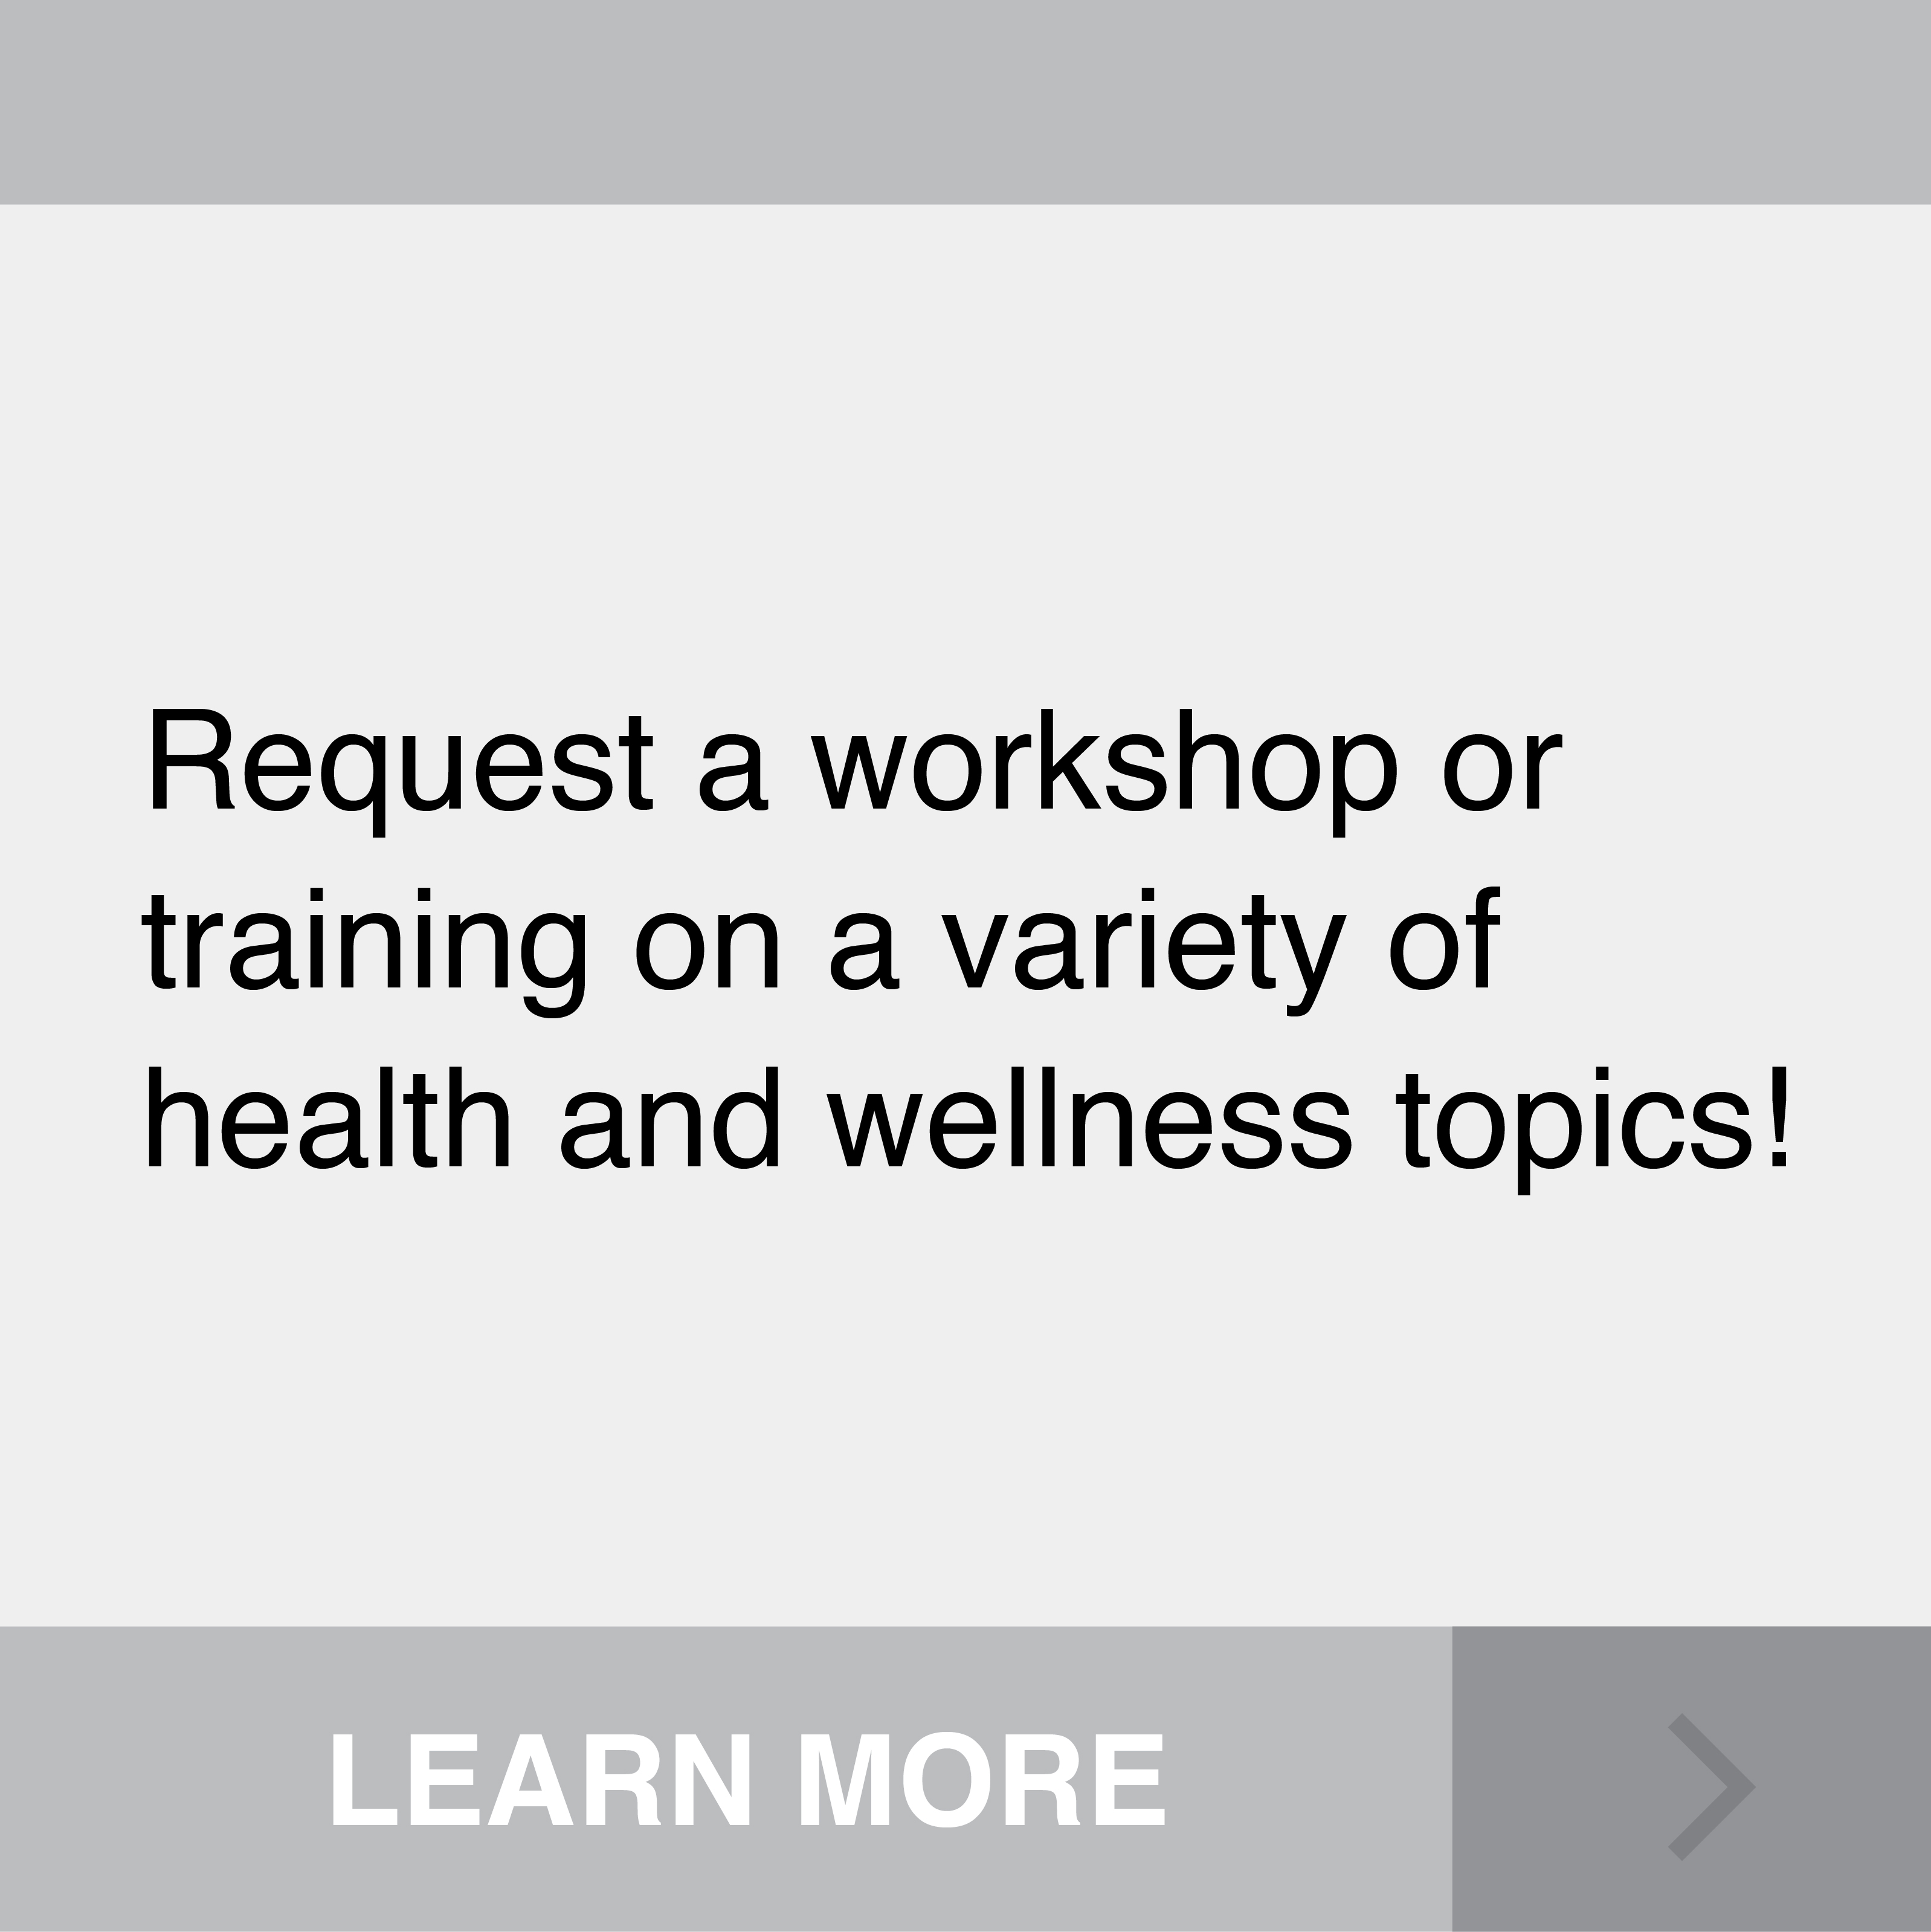 Request a workshop or training on a variety of health and wellness topics! Click to Learn More.